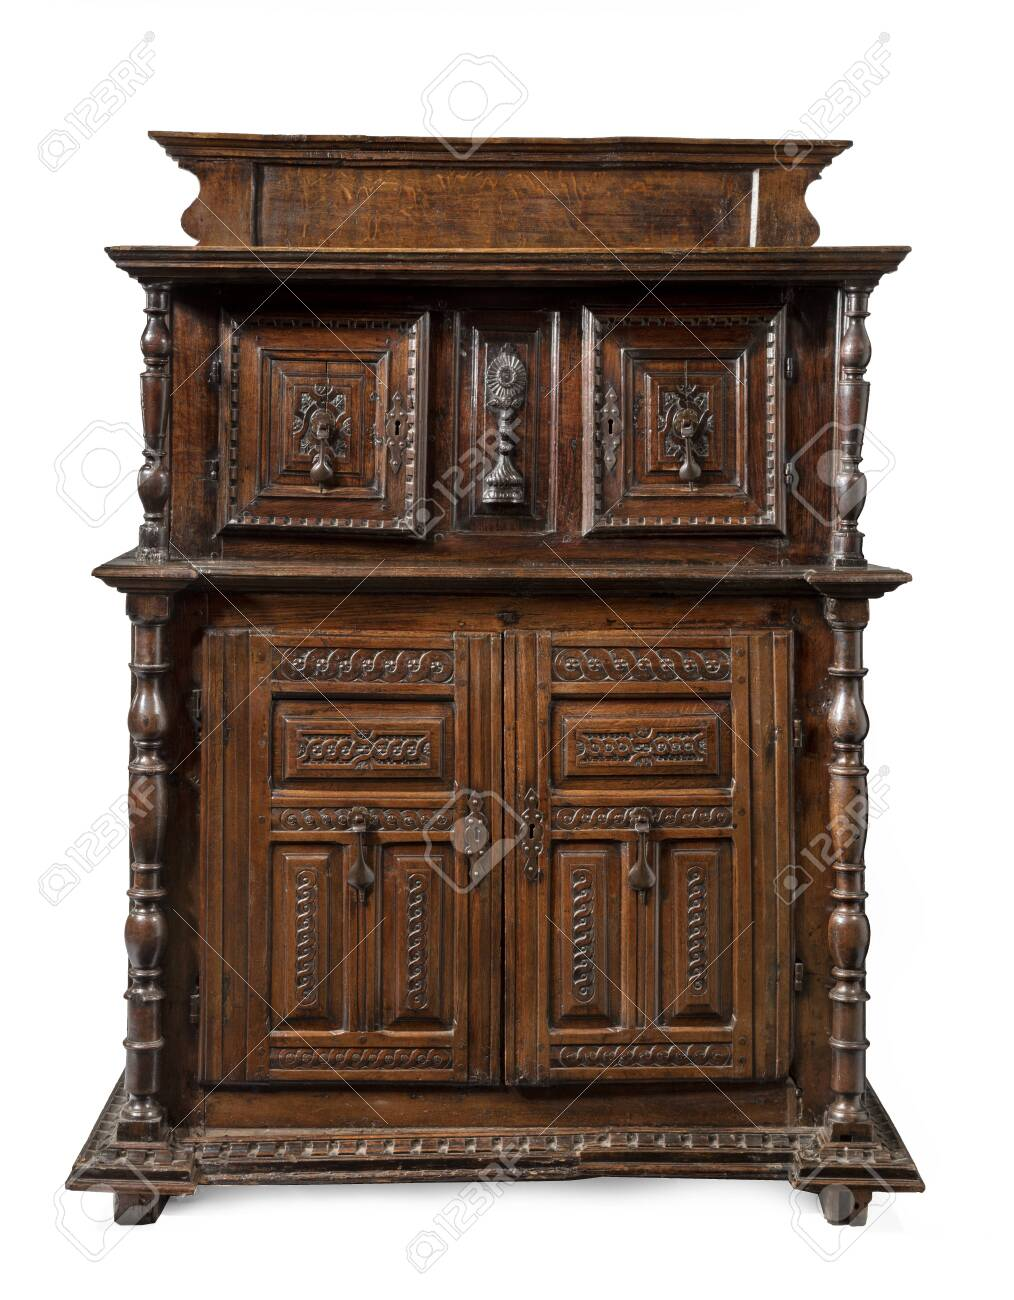 old vintage antique buffet sideboard carved with drawers isolated on white. - 137429166